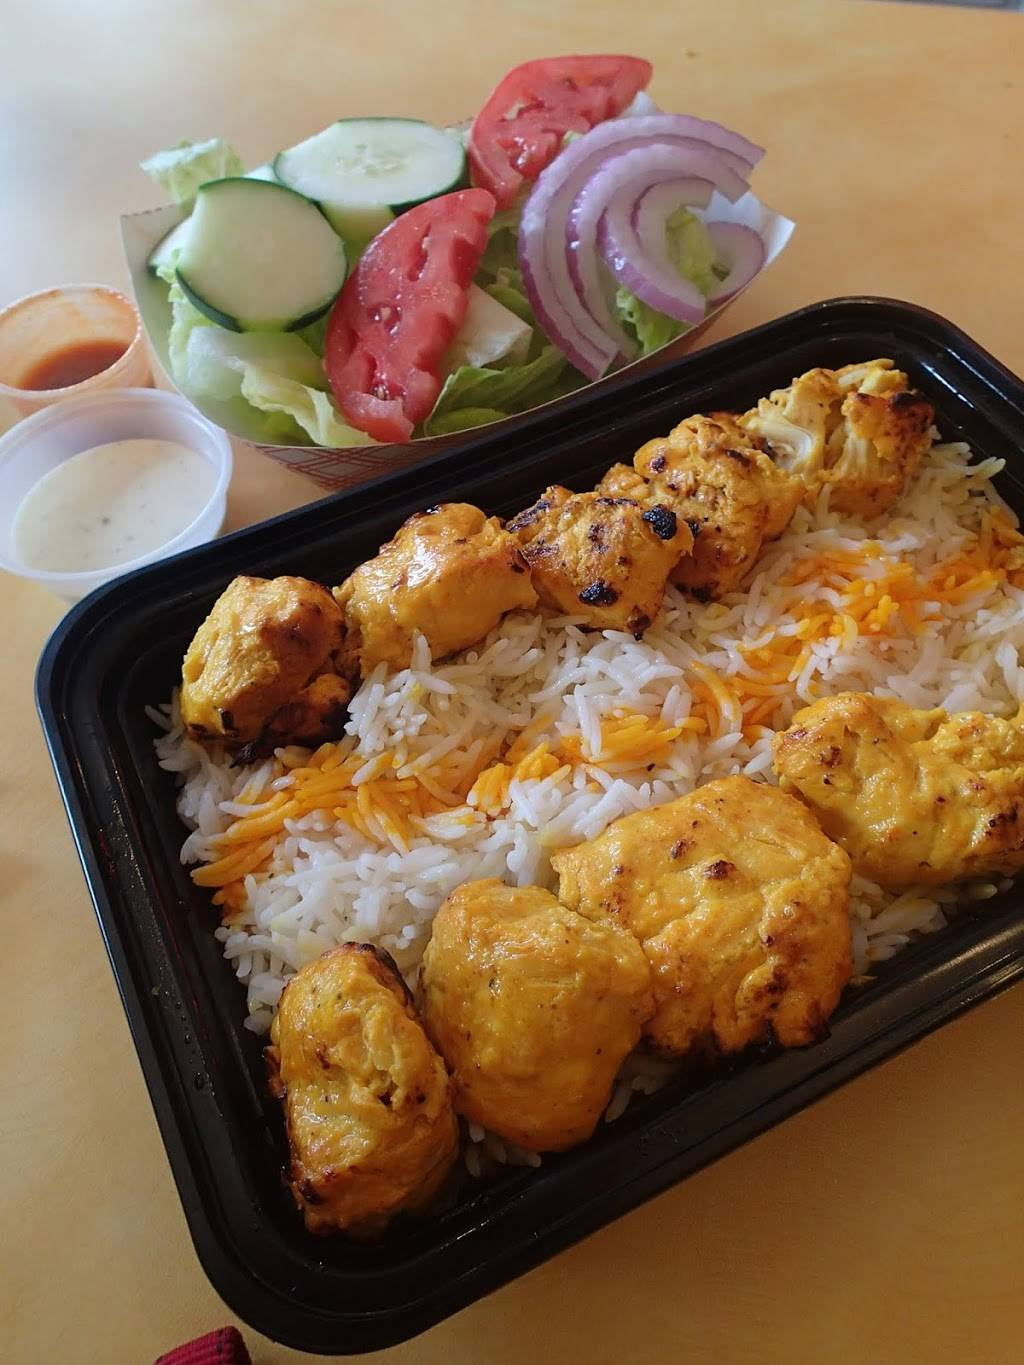 Cluck U Chicken Hoboken NJ | meal takeaway | 112 Washington St, Hoboken, NJ 07030, USA | 2016839307 OR +1 201-683-9307